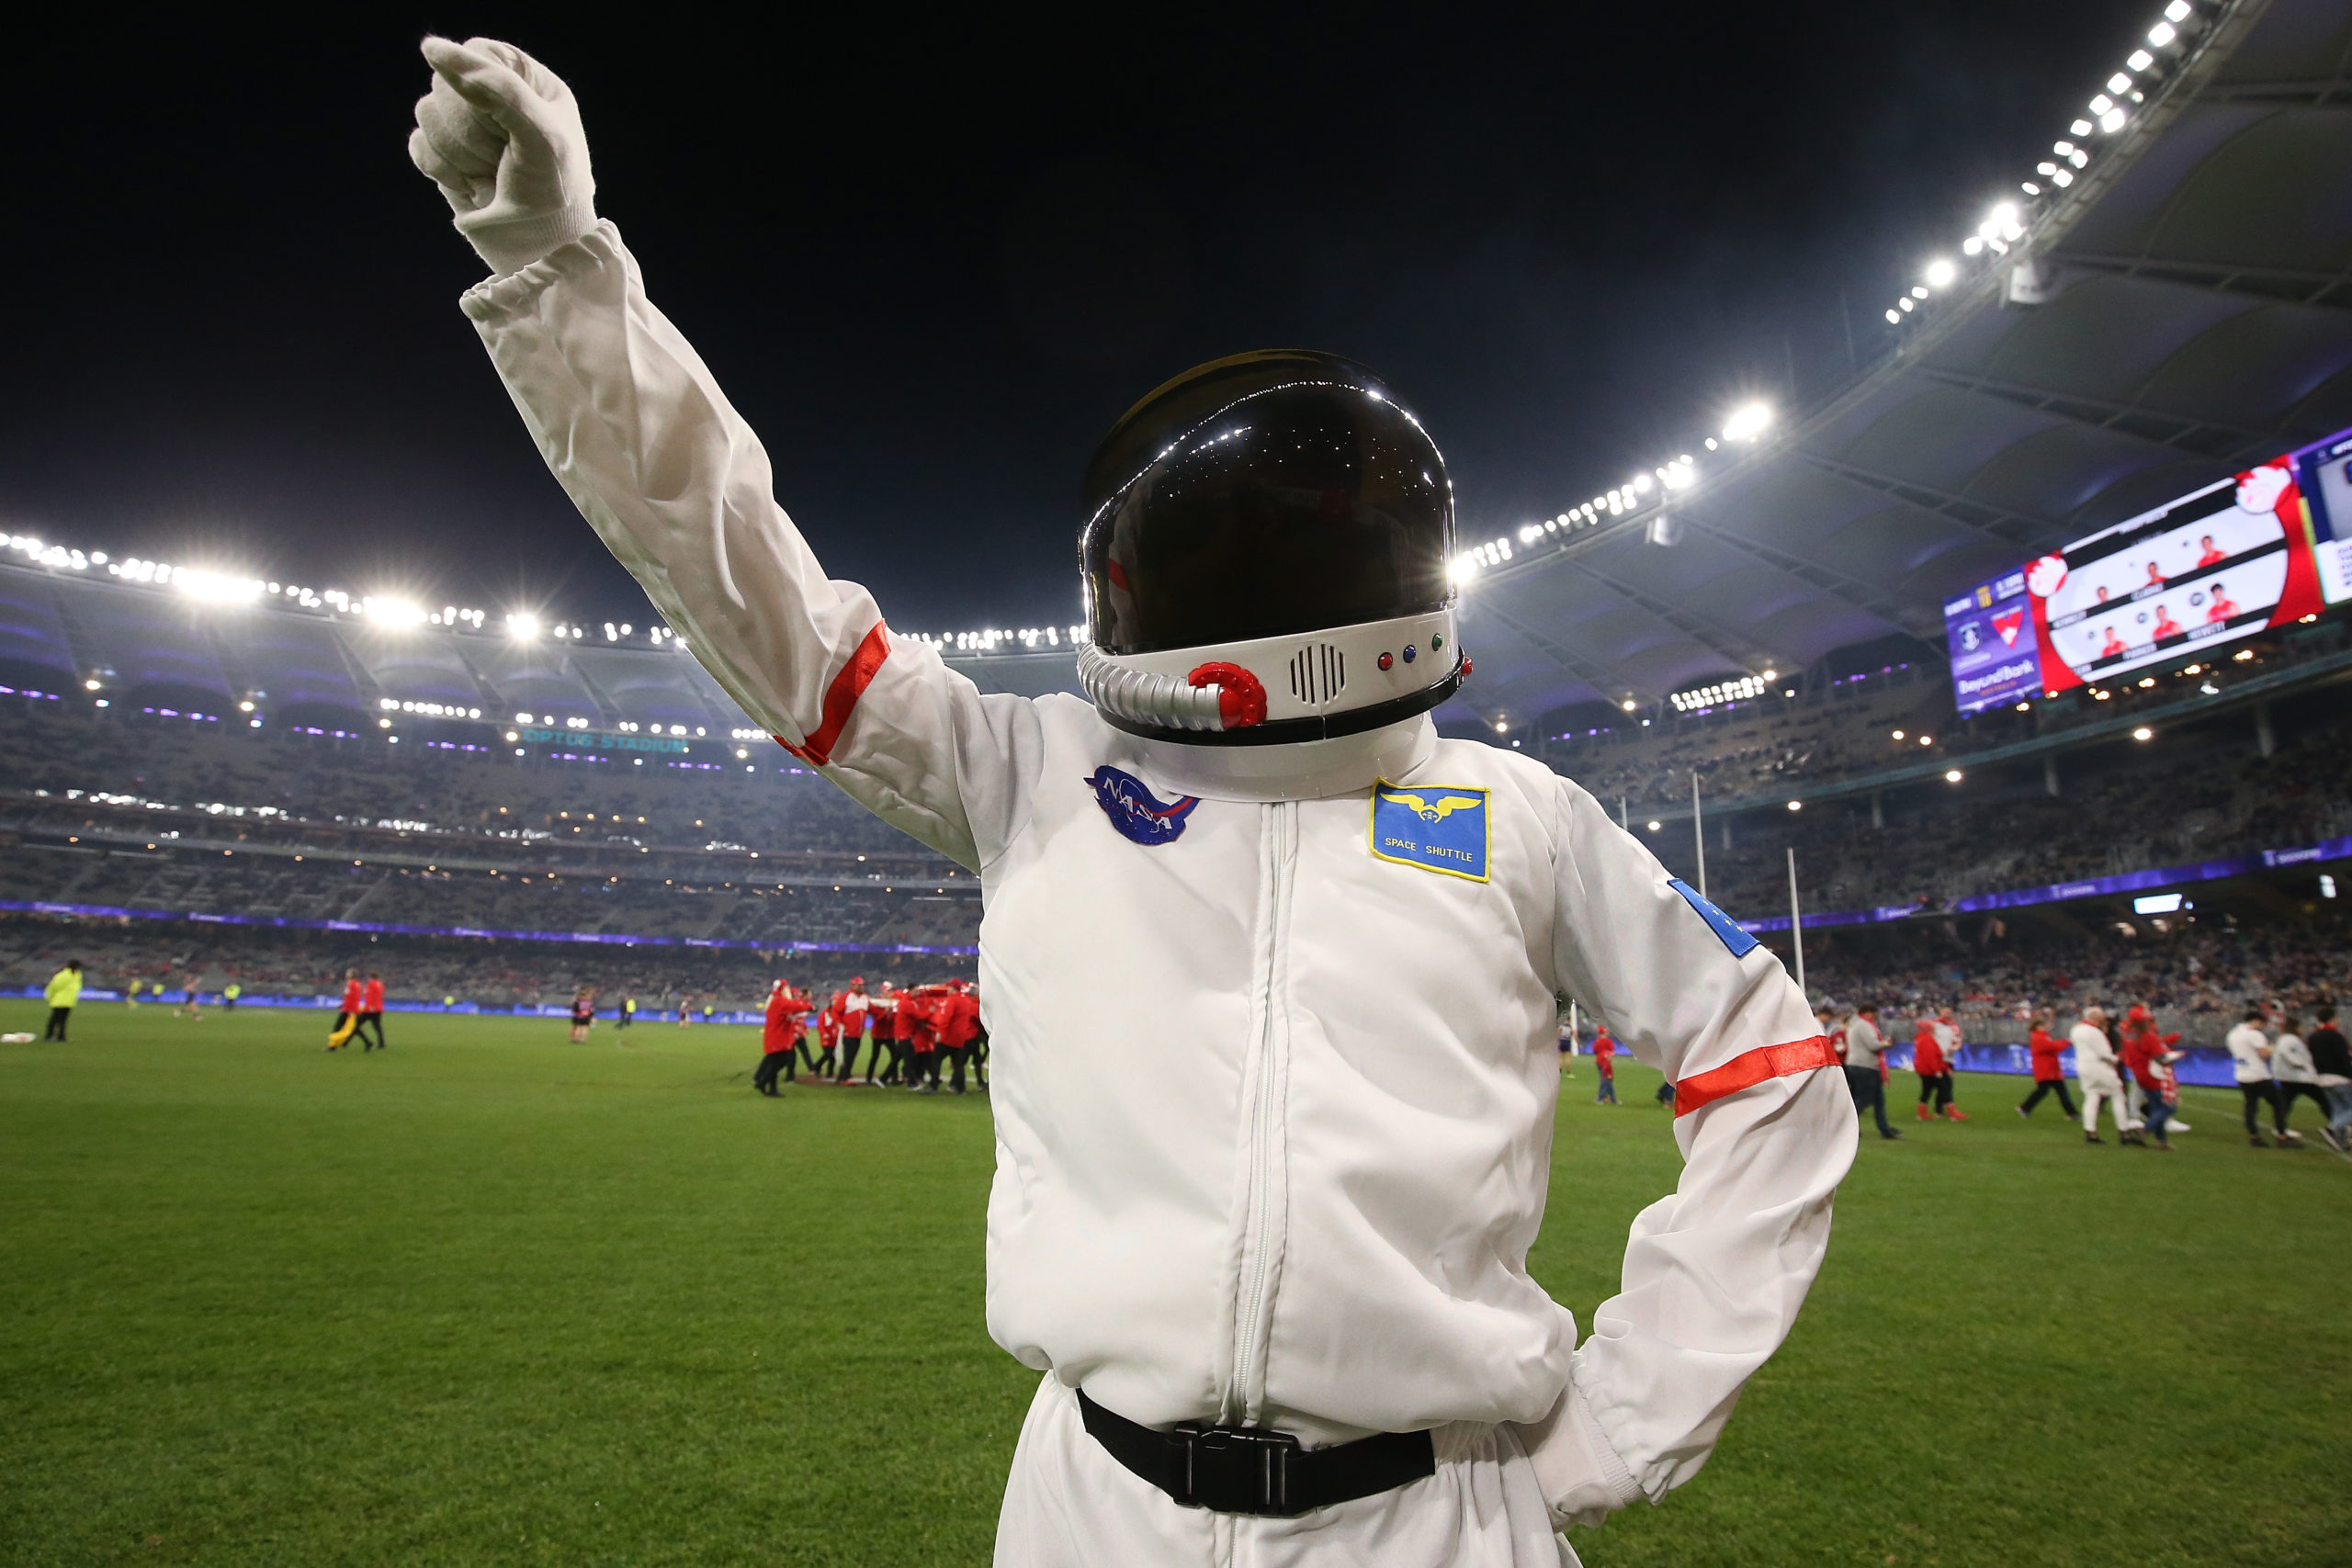 PERTH, AUSTRALIA - JULY 20: A mascot dressed an astronaut poses to commemorate the Apollo 11 moon landing during the round 18 AFL match between the Fremantle Dockers and the Sydney Swans at Optus Stadium on July 20, 2019 in Perth, Australia. (Photo by Paul Kane/Getty Images)